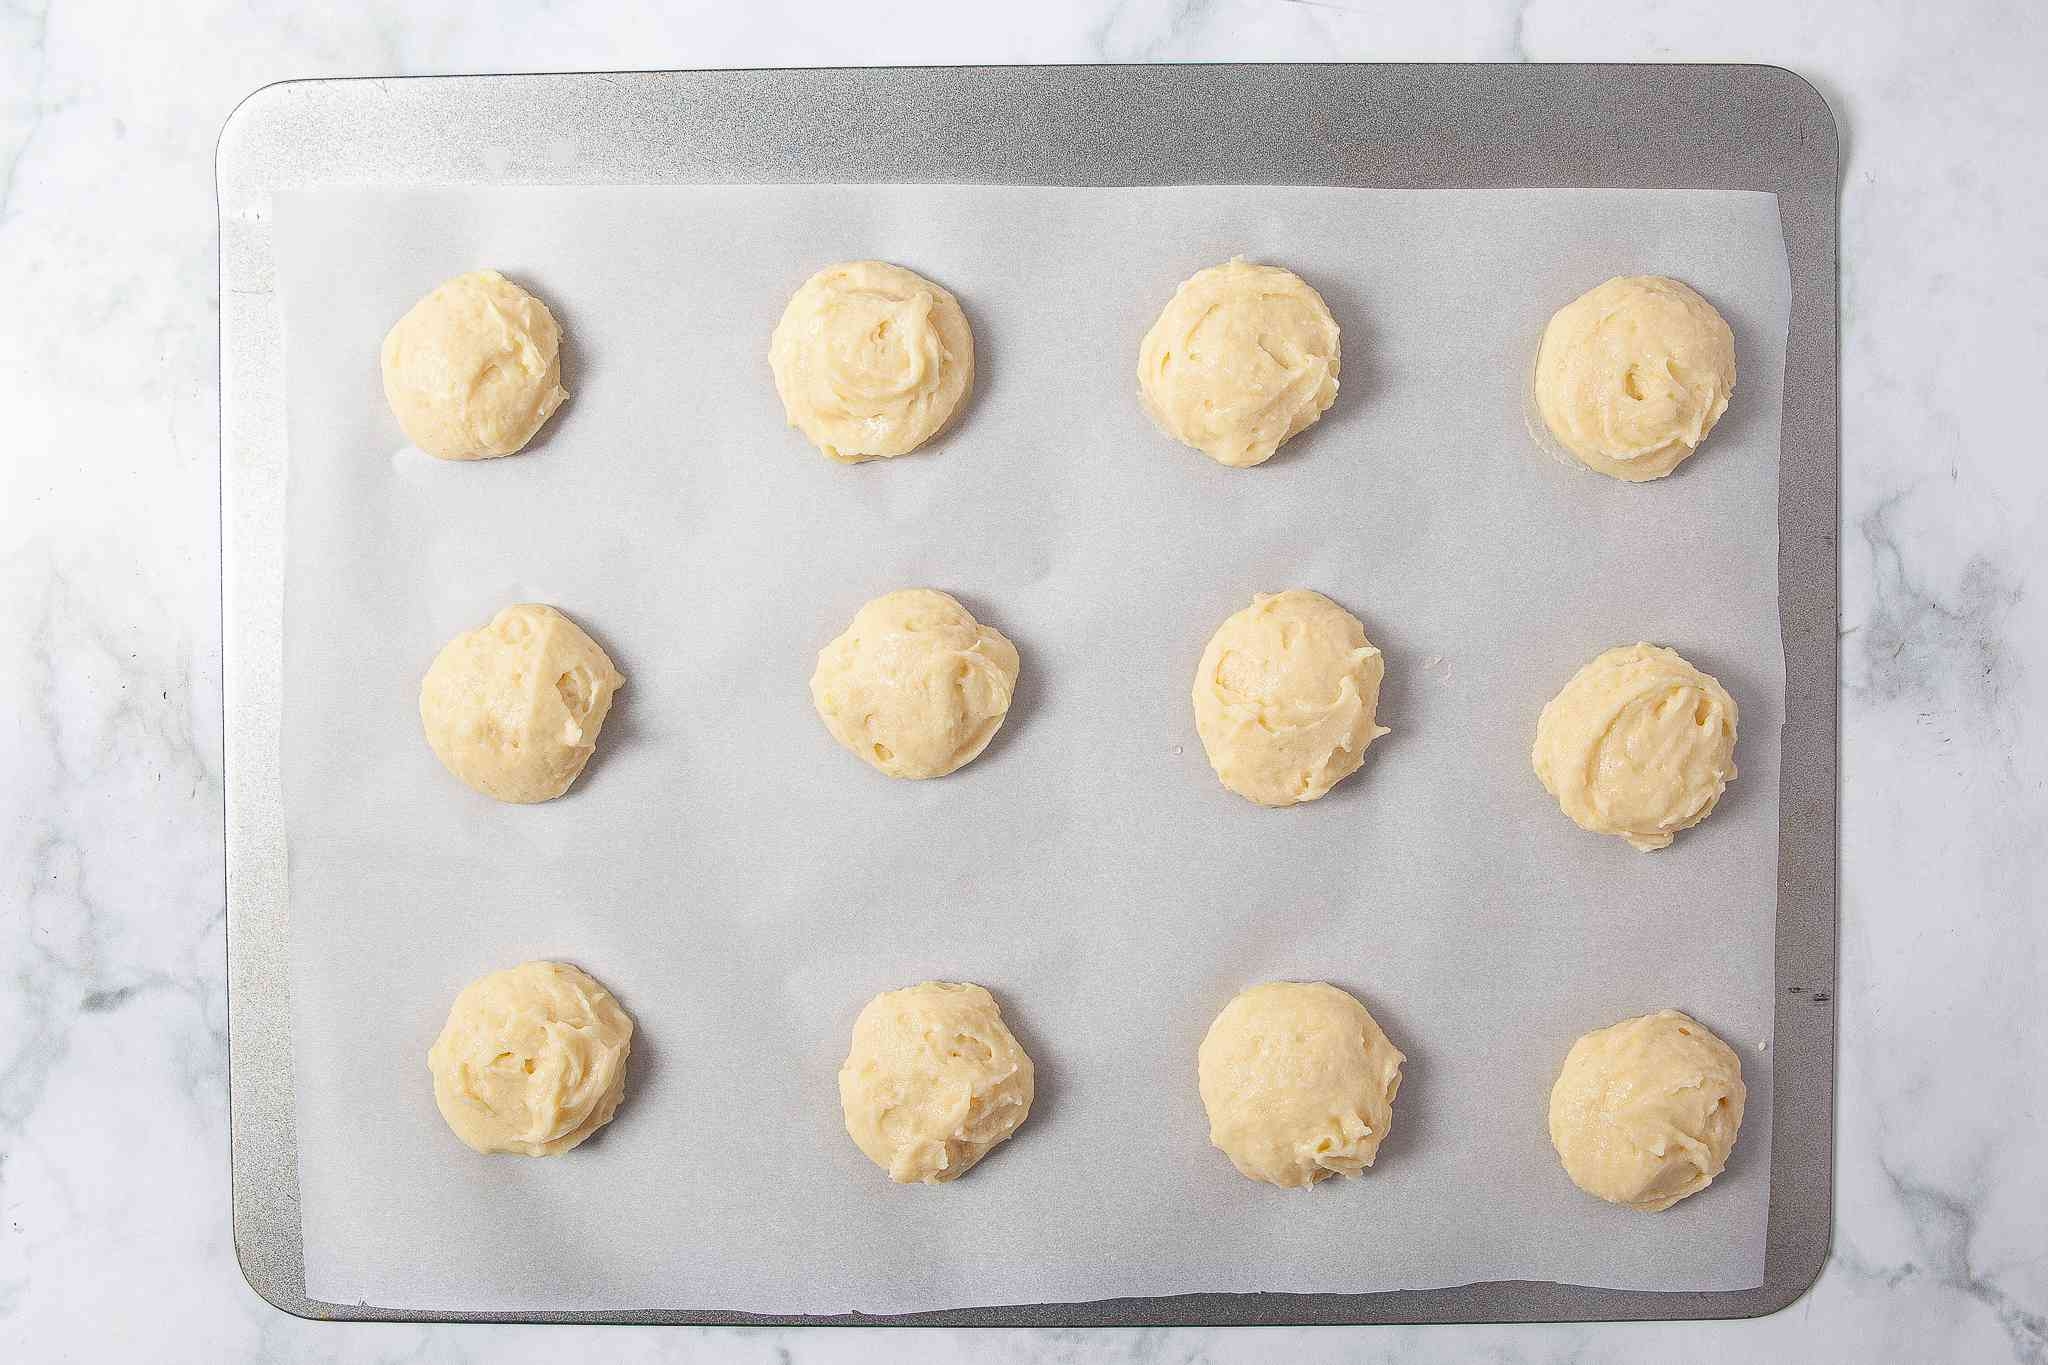 Lemon Ricotta Cookies ready to be baked